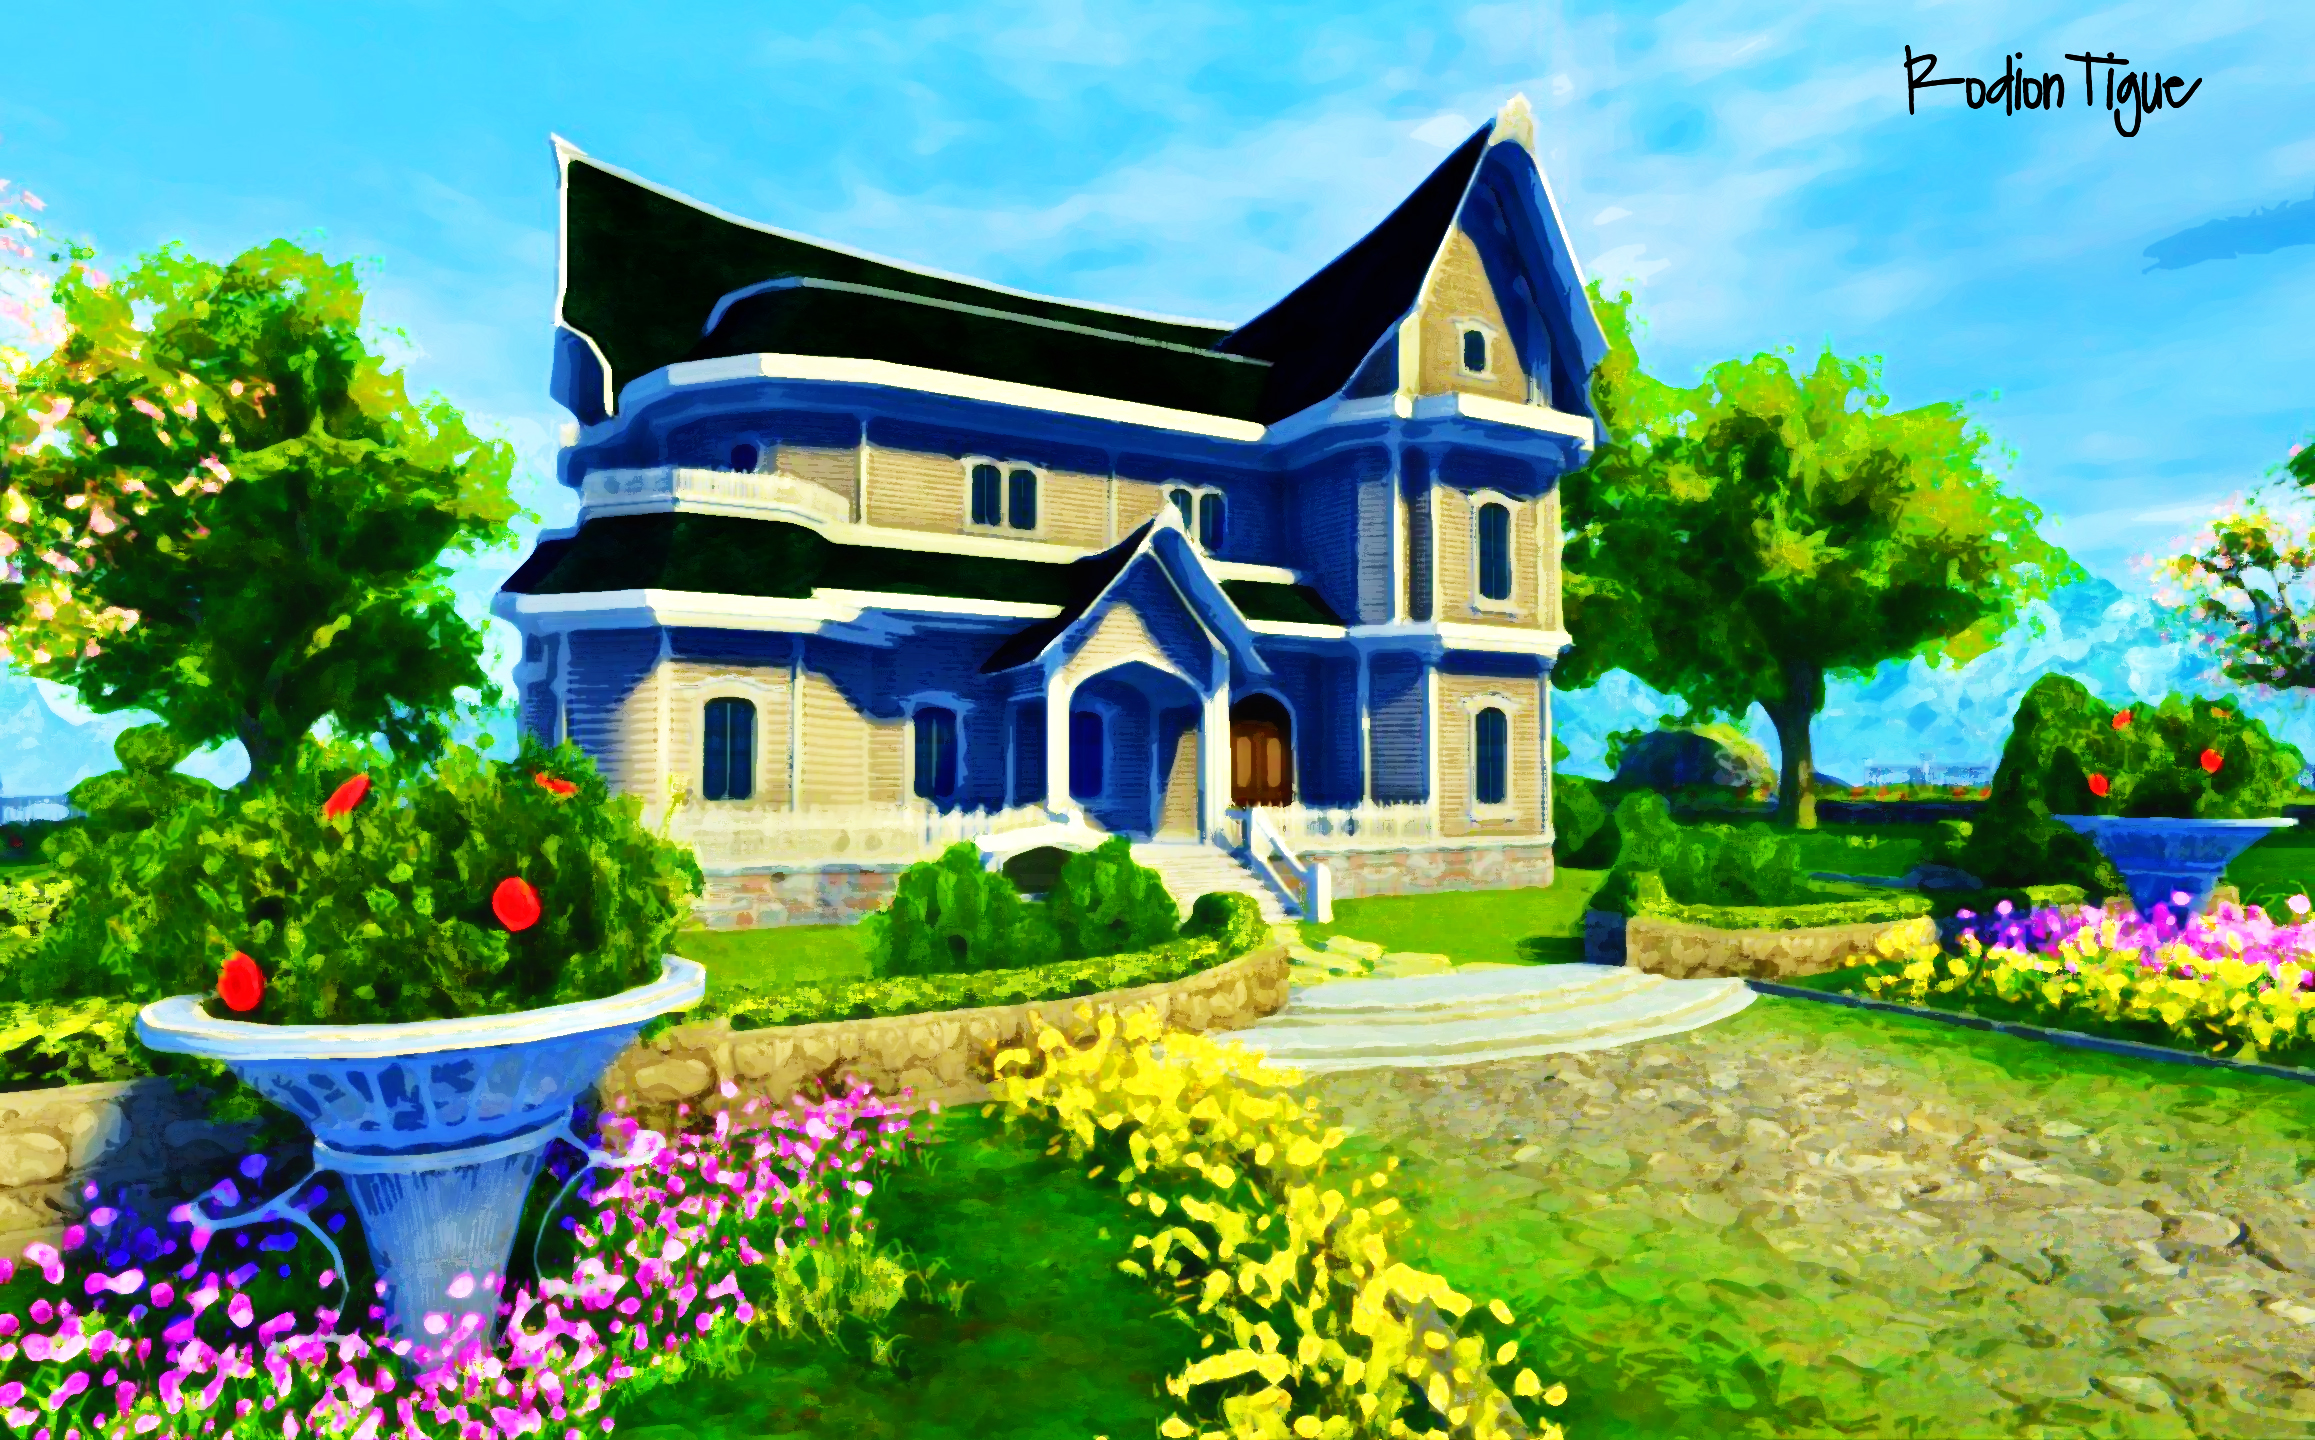 Dream home wallpaper by rodiontigue on deviantart for Beautiful house hd image